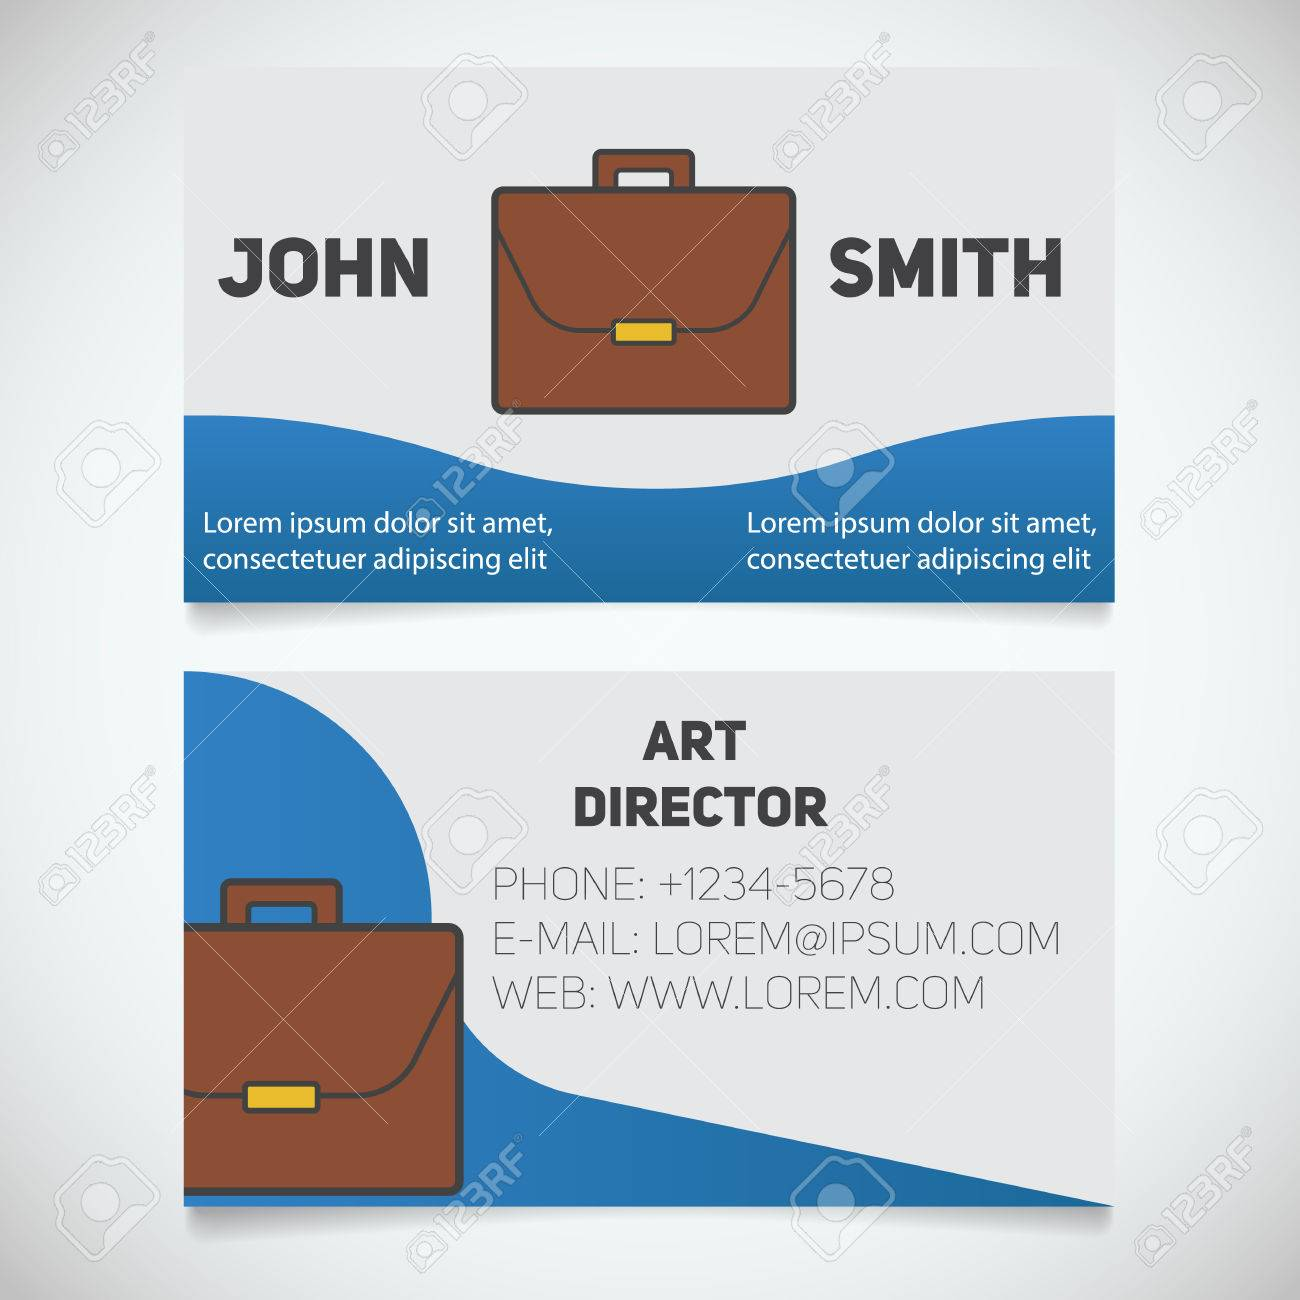 Modele Dimpression De Carte Visite Directeur Artistique Logo Porte Documents